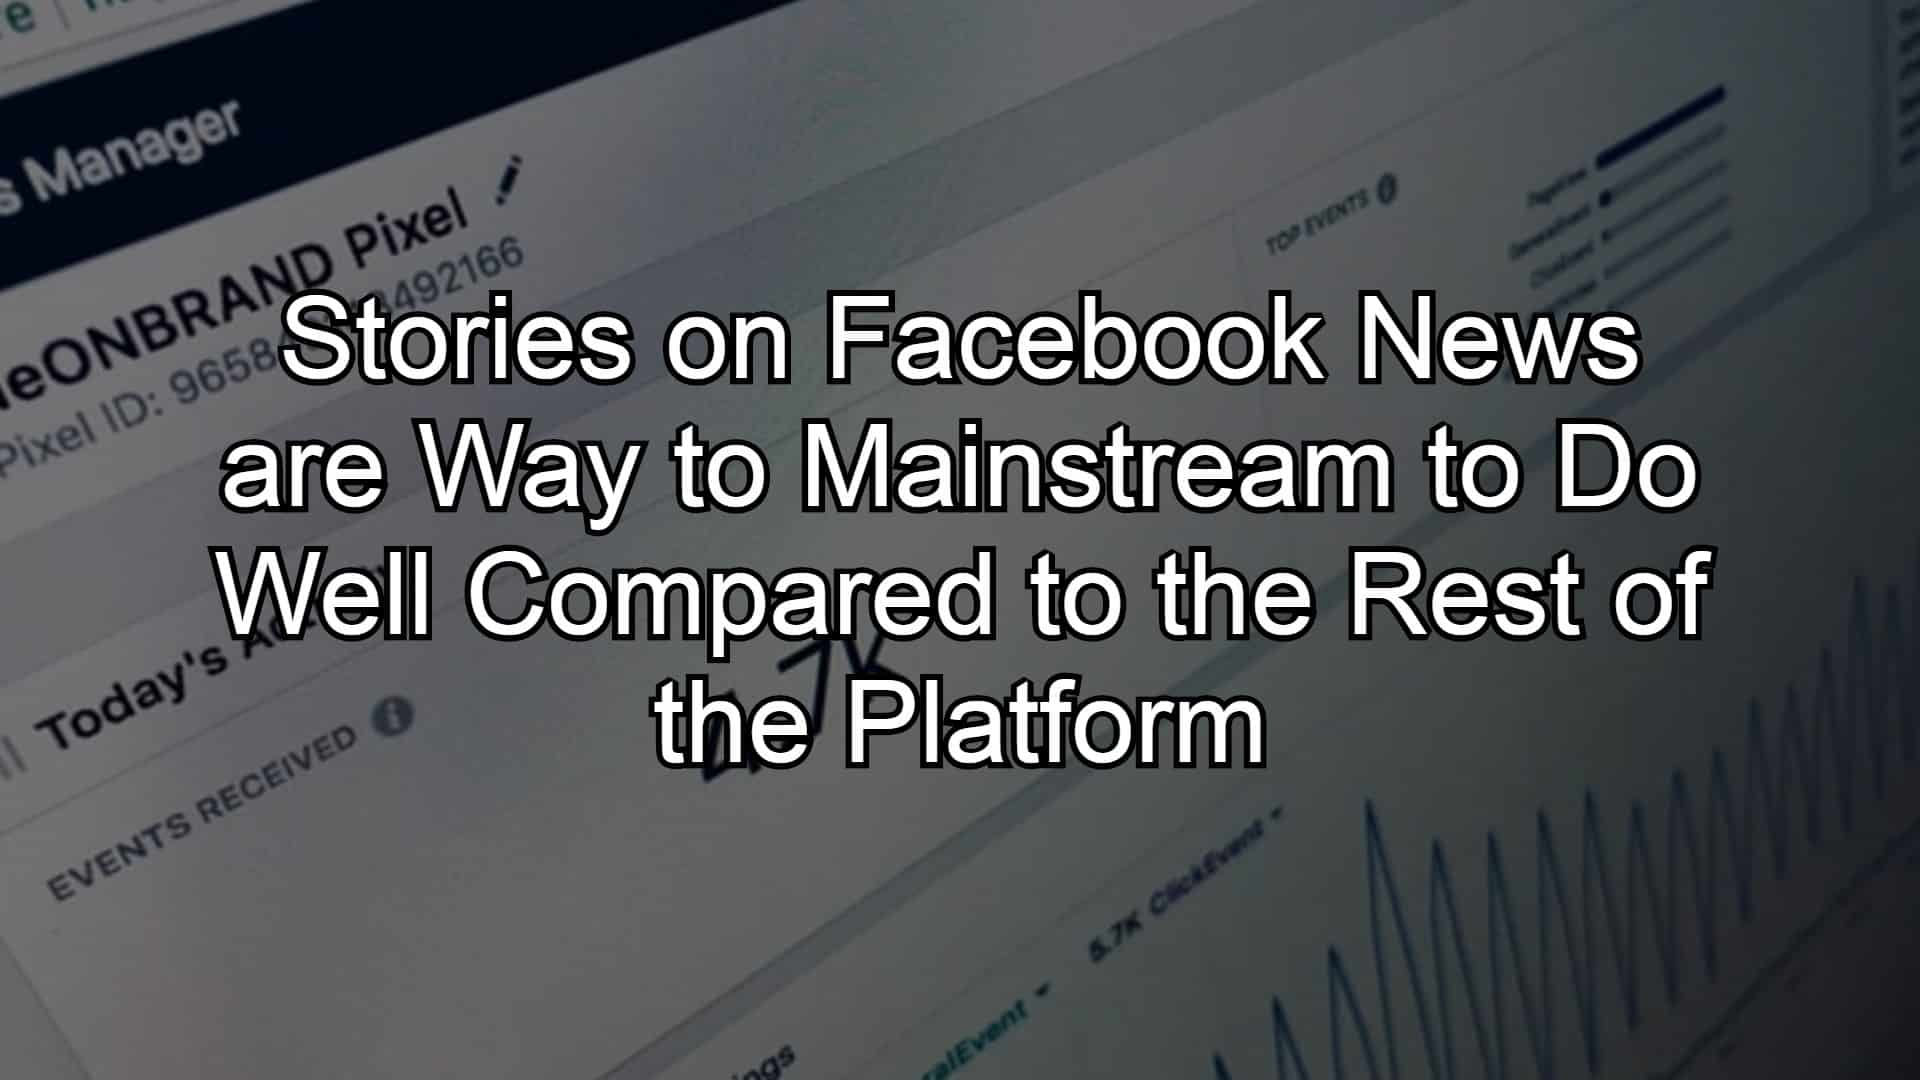 Stories on Facebook News are Way to Mainstream to Do Well Compared to the Rest of the Platform